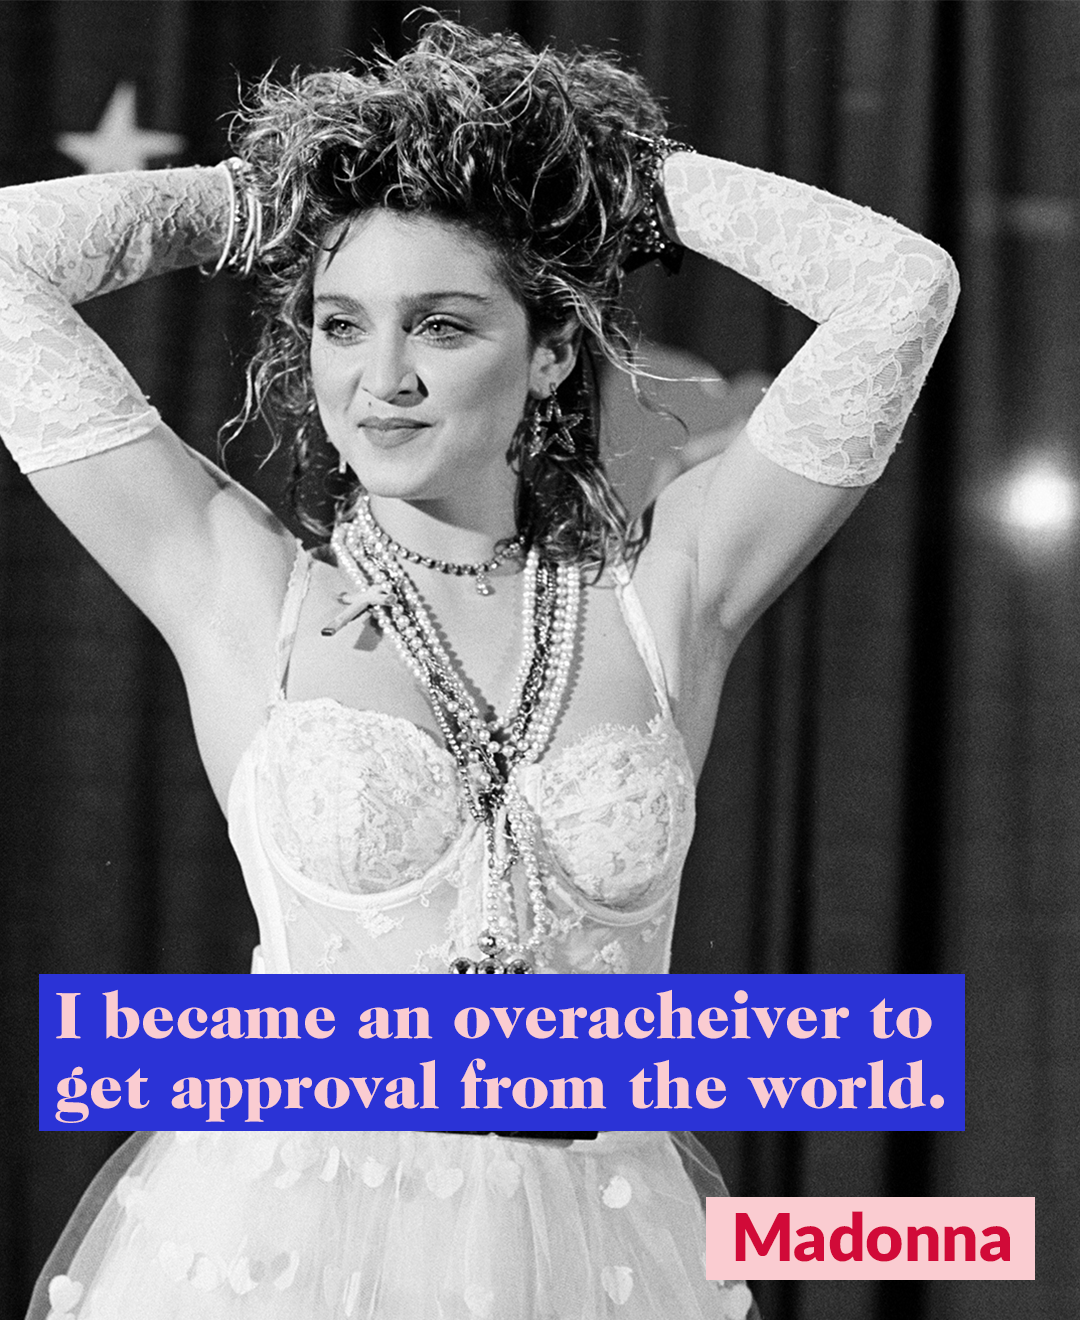 Madonna Inspirational Quotes: 7 Madonna Quotes That Push The Envelope